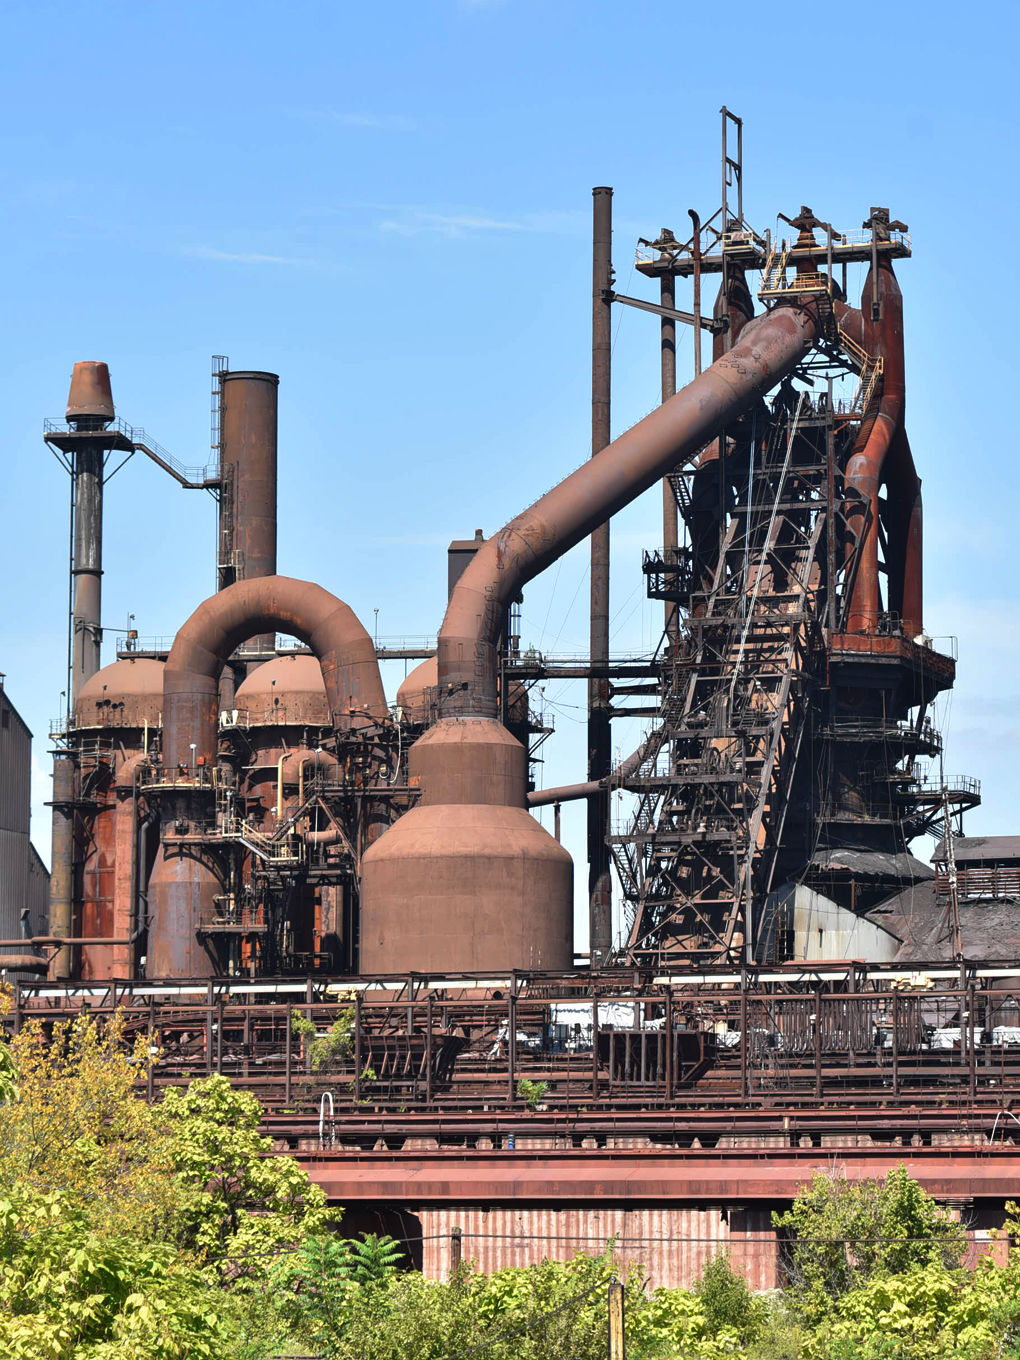 AK Steel Mill